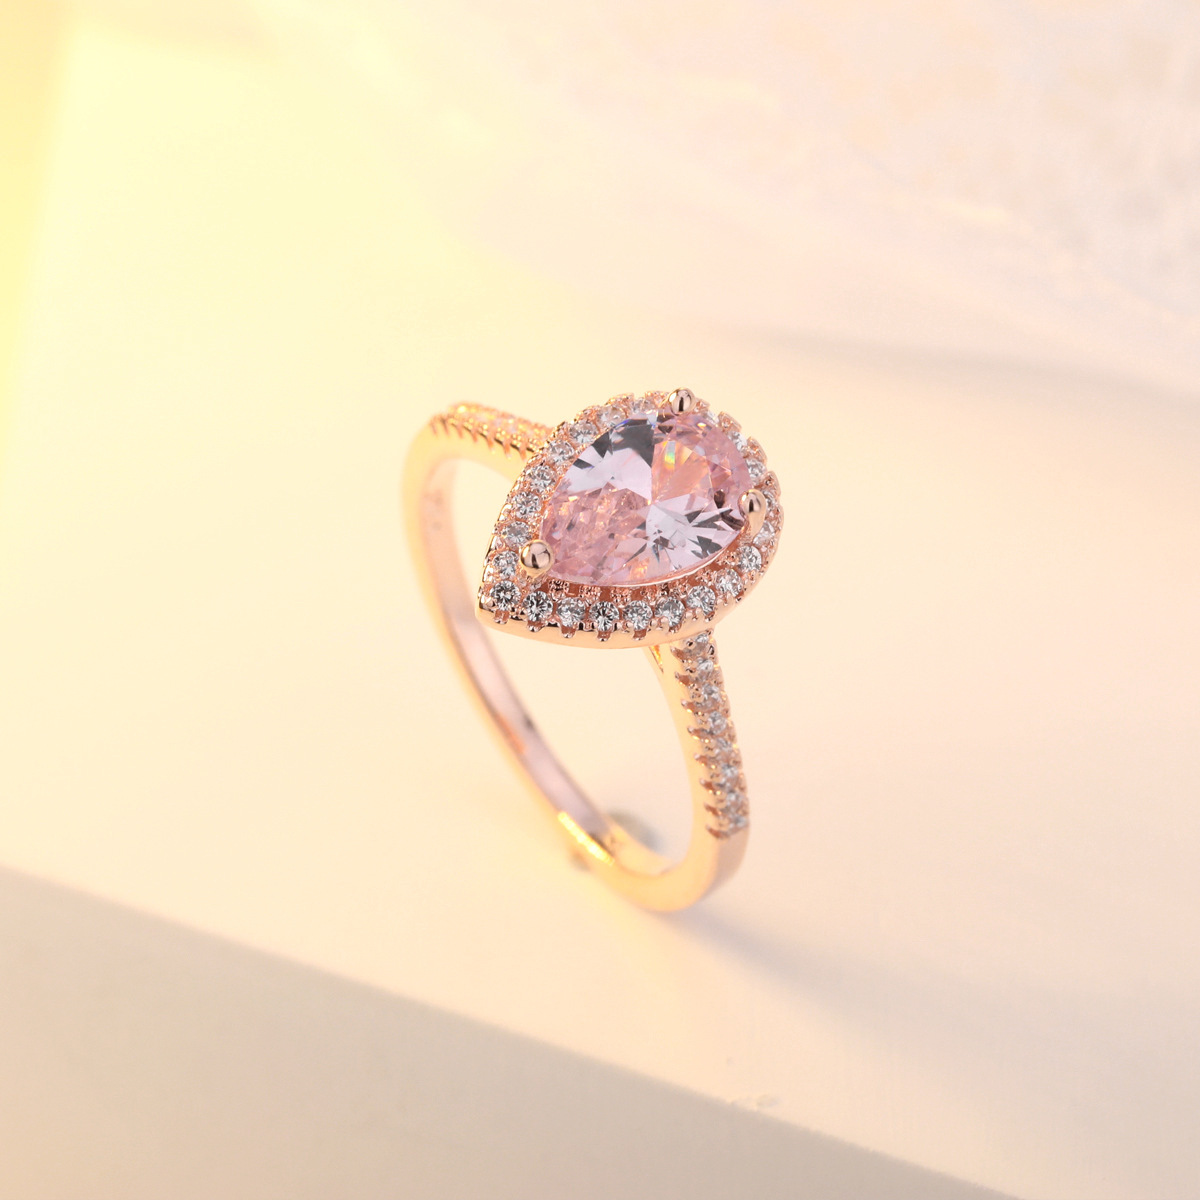 14K Rose-gold Rings Diamond Pink Crystal Heart-shaped Anillos De Bizuteria For Women Bague Etoile Diamante 14k Topaz Ring Gem